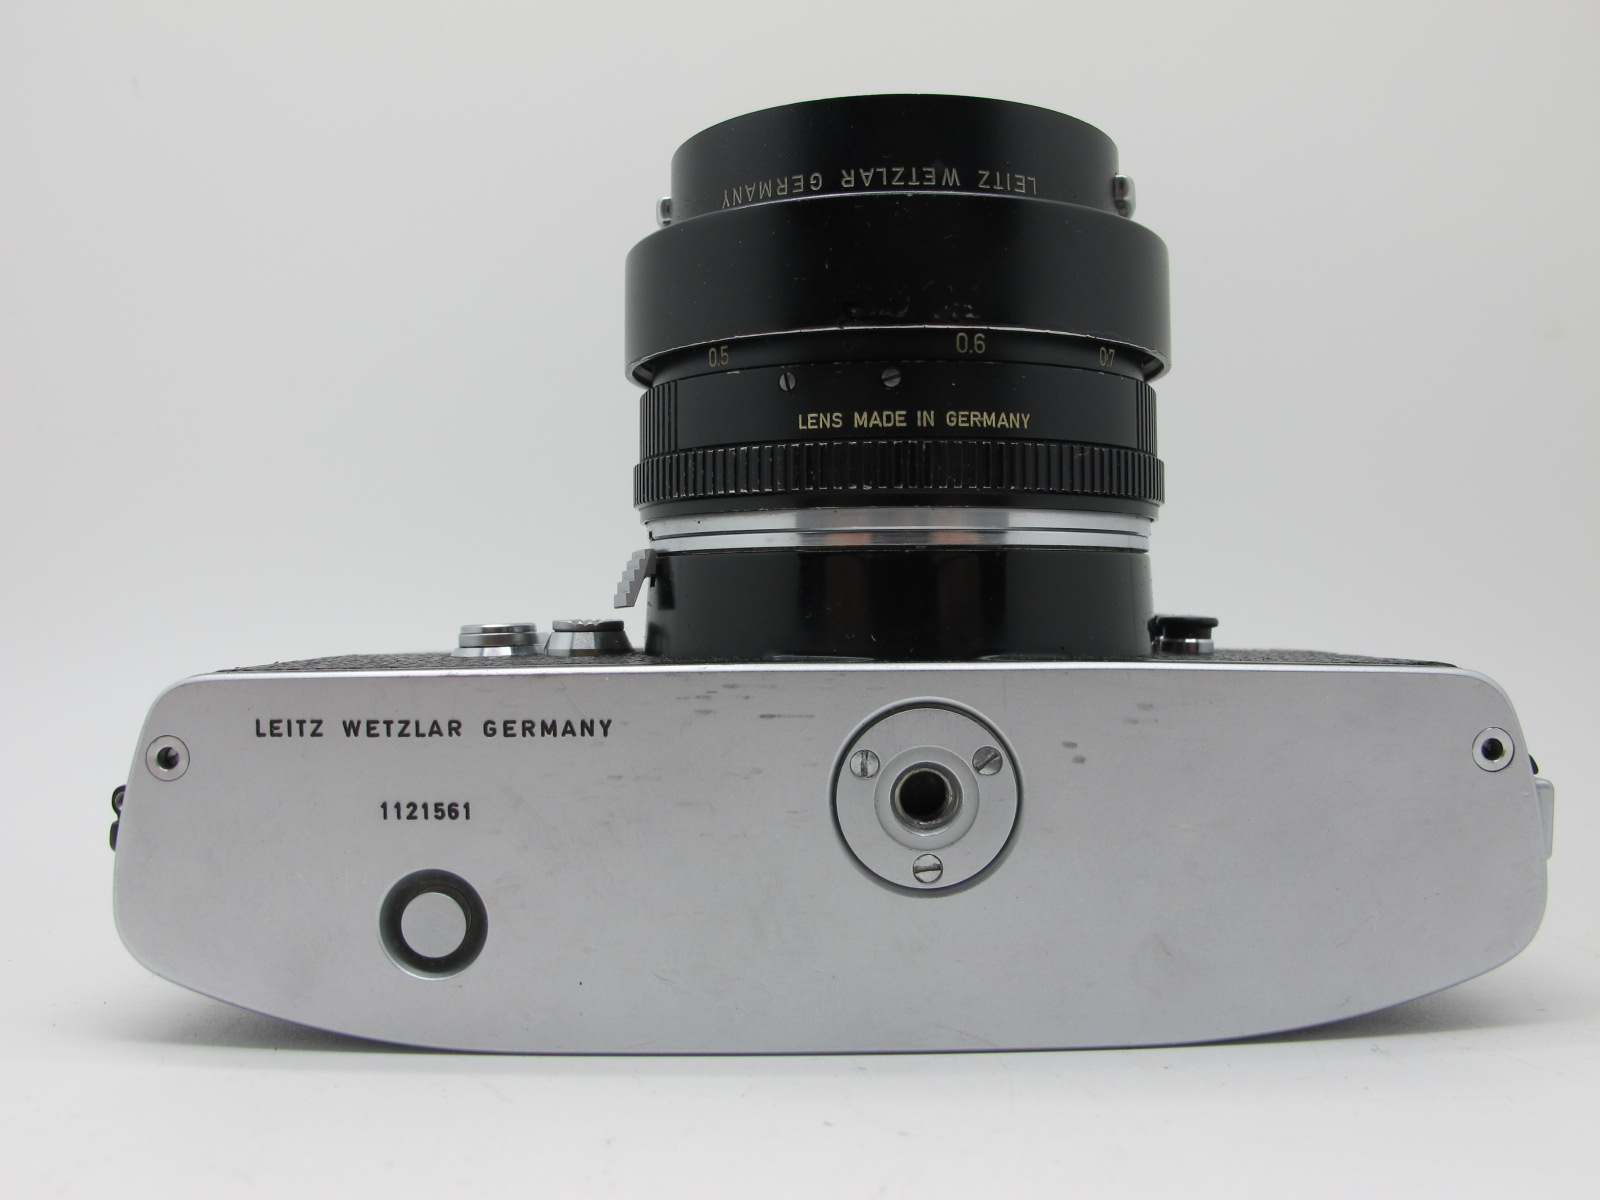 Leicaflex Manual Camera, with Leitz Wetzlar Summicron - R 1:2/50 lens in a black case. - Image 7 of 8